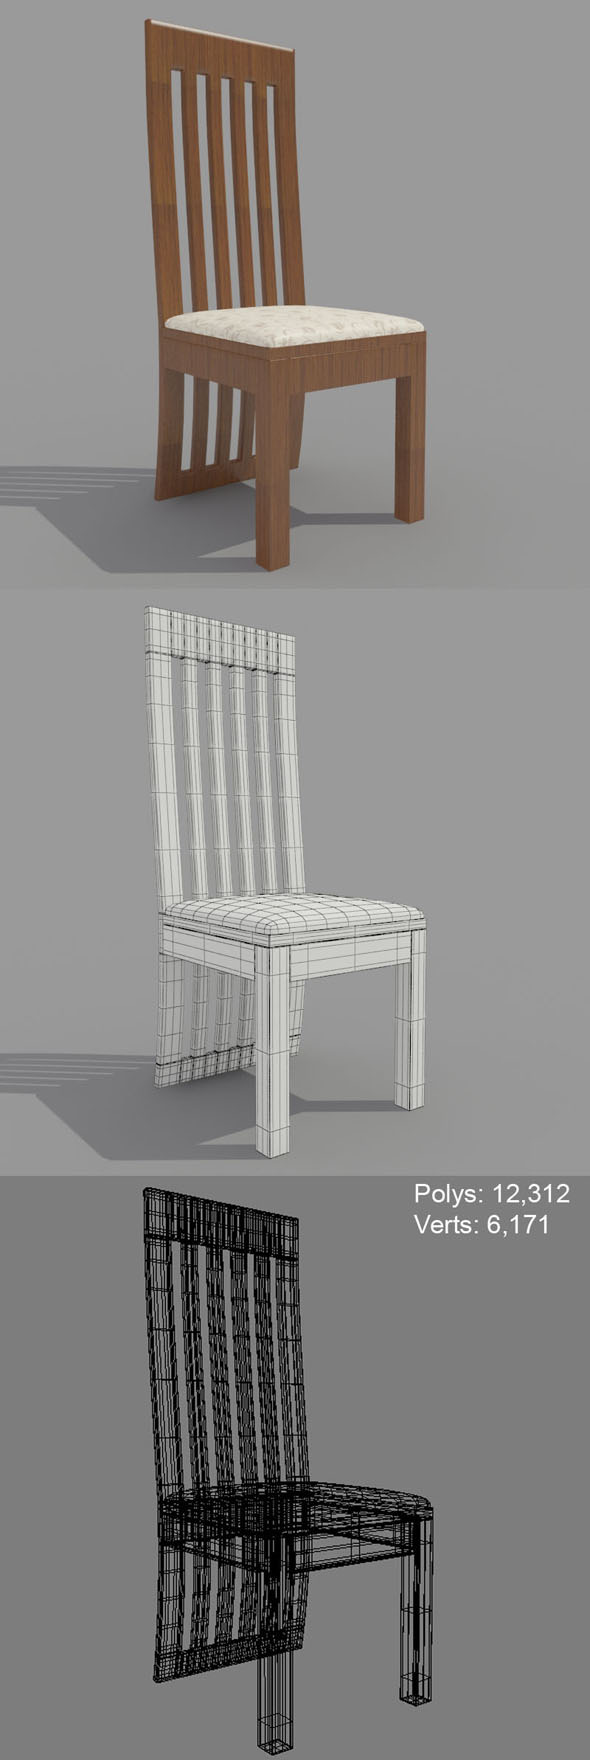 Dining Chair-1 - 3DOcean Item for Sale